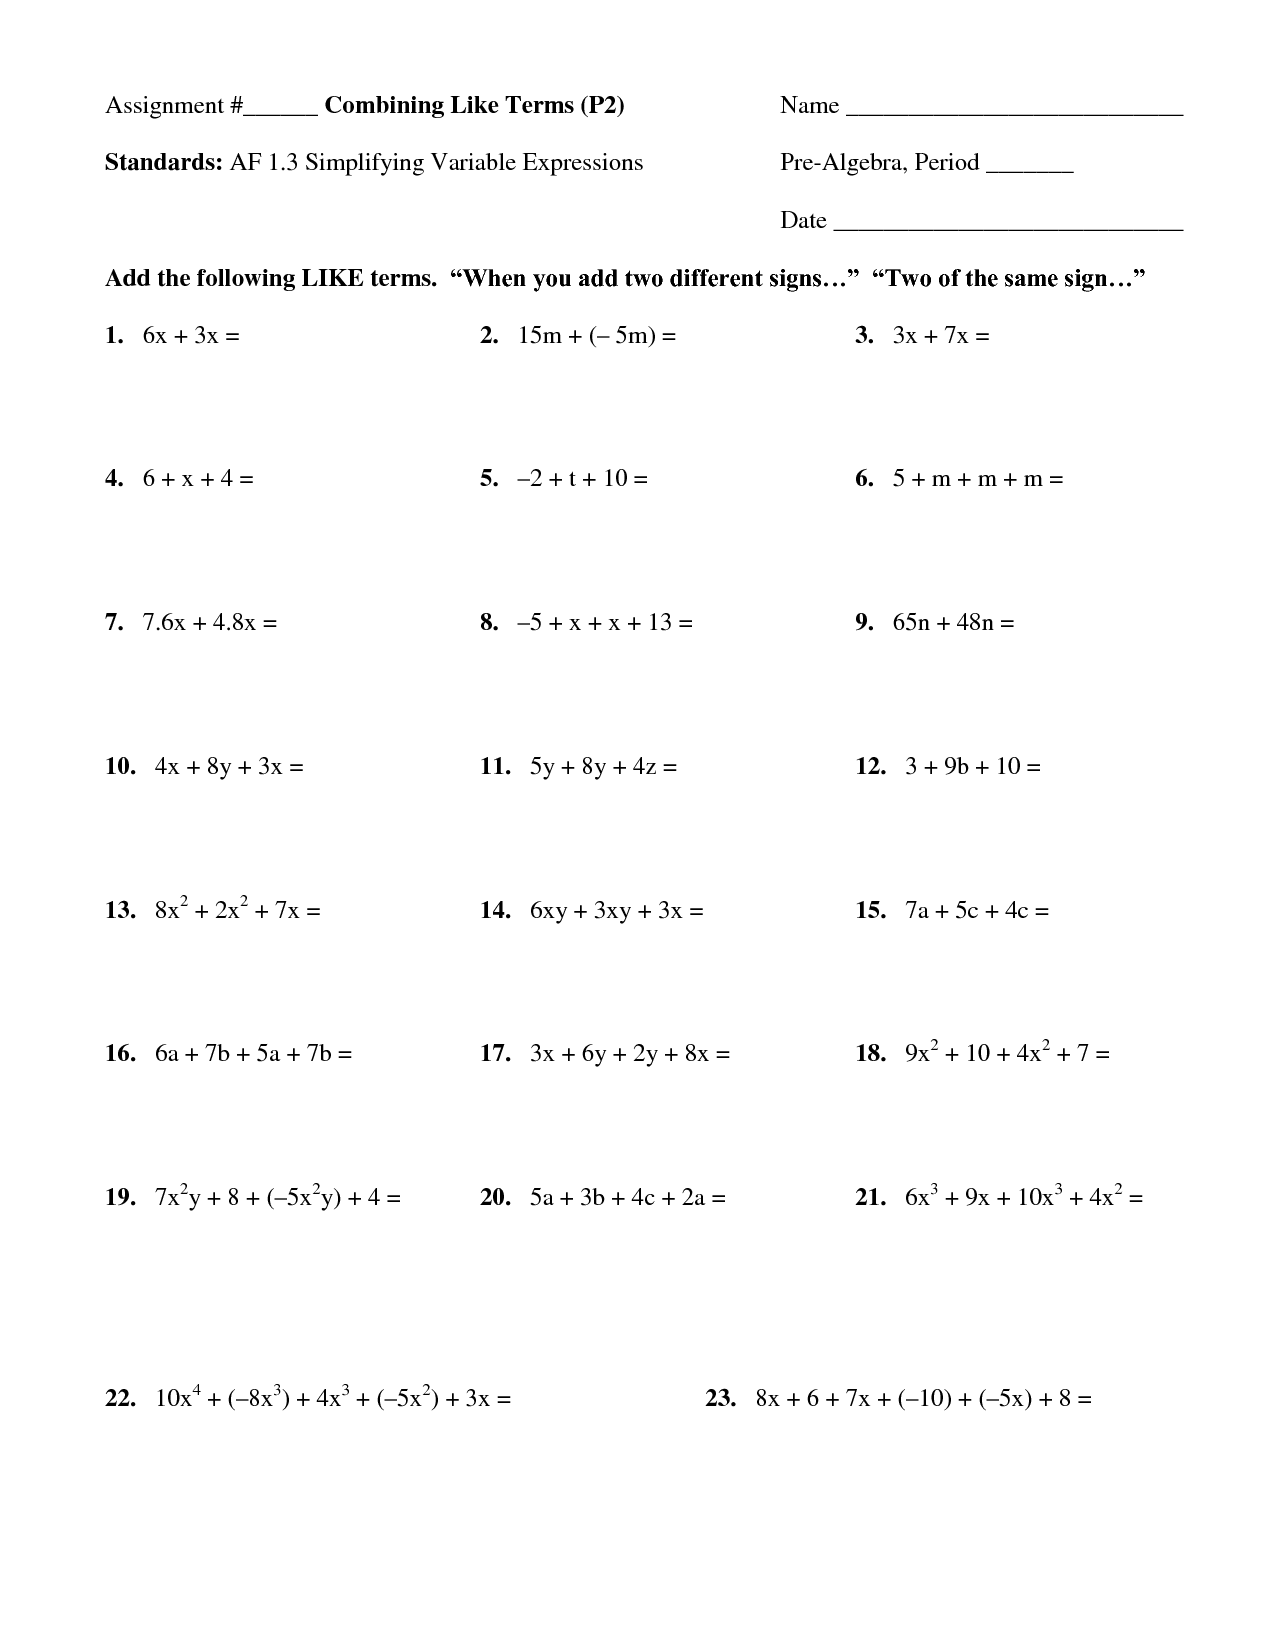 Combining Like Terms | Worksheet | Education.com